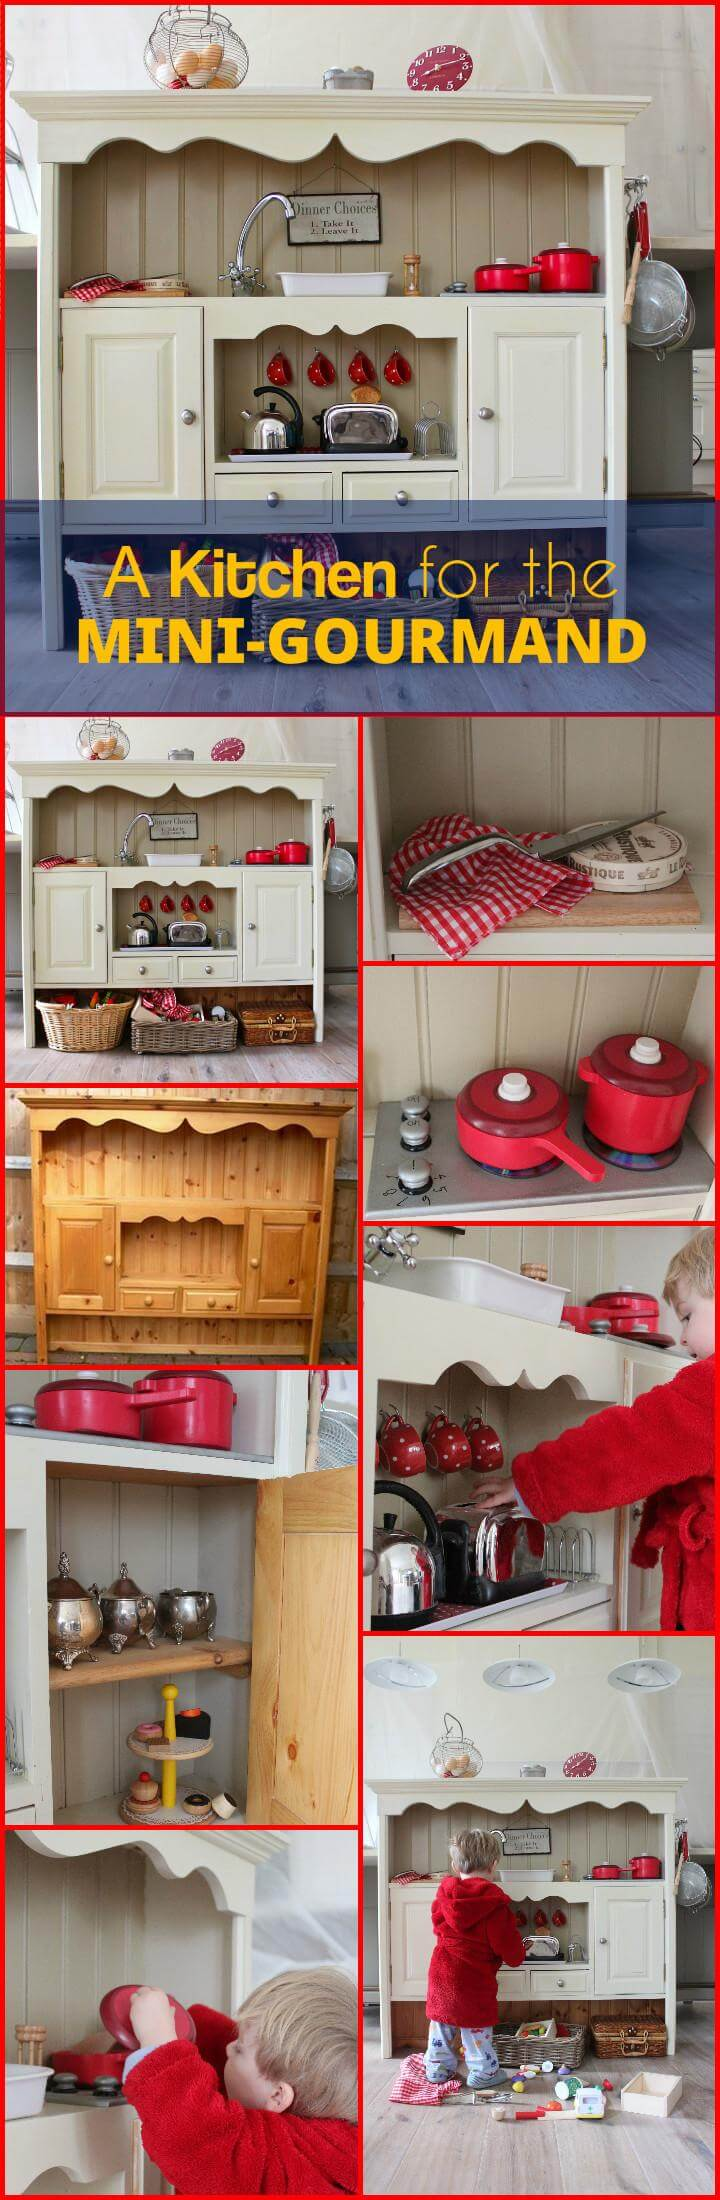 handcrafted playkitchen for the mini-gourmand